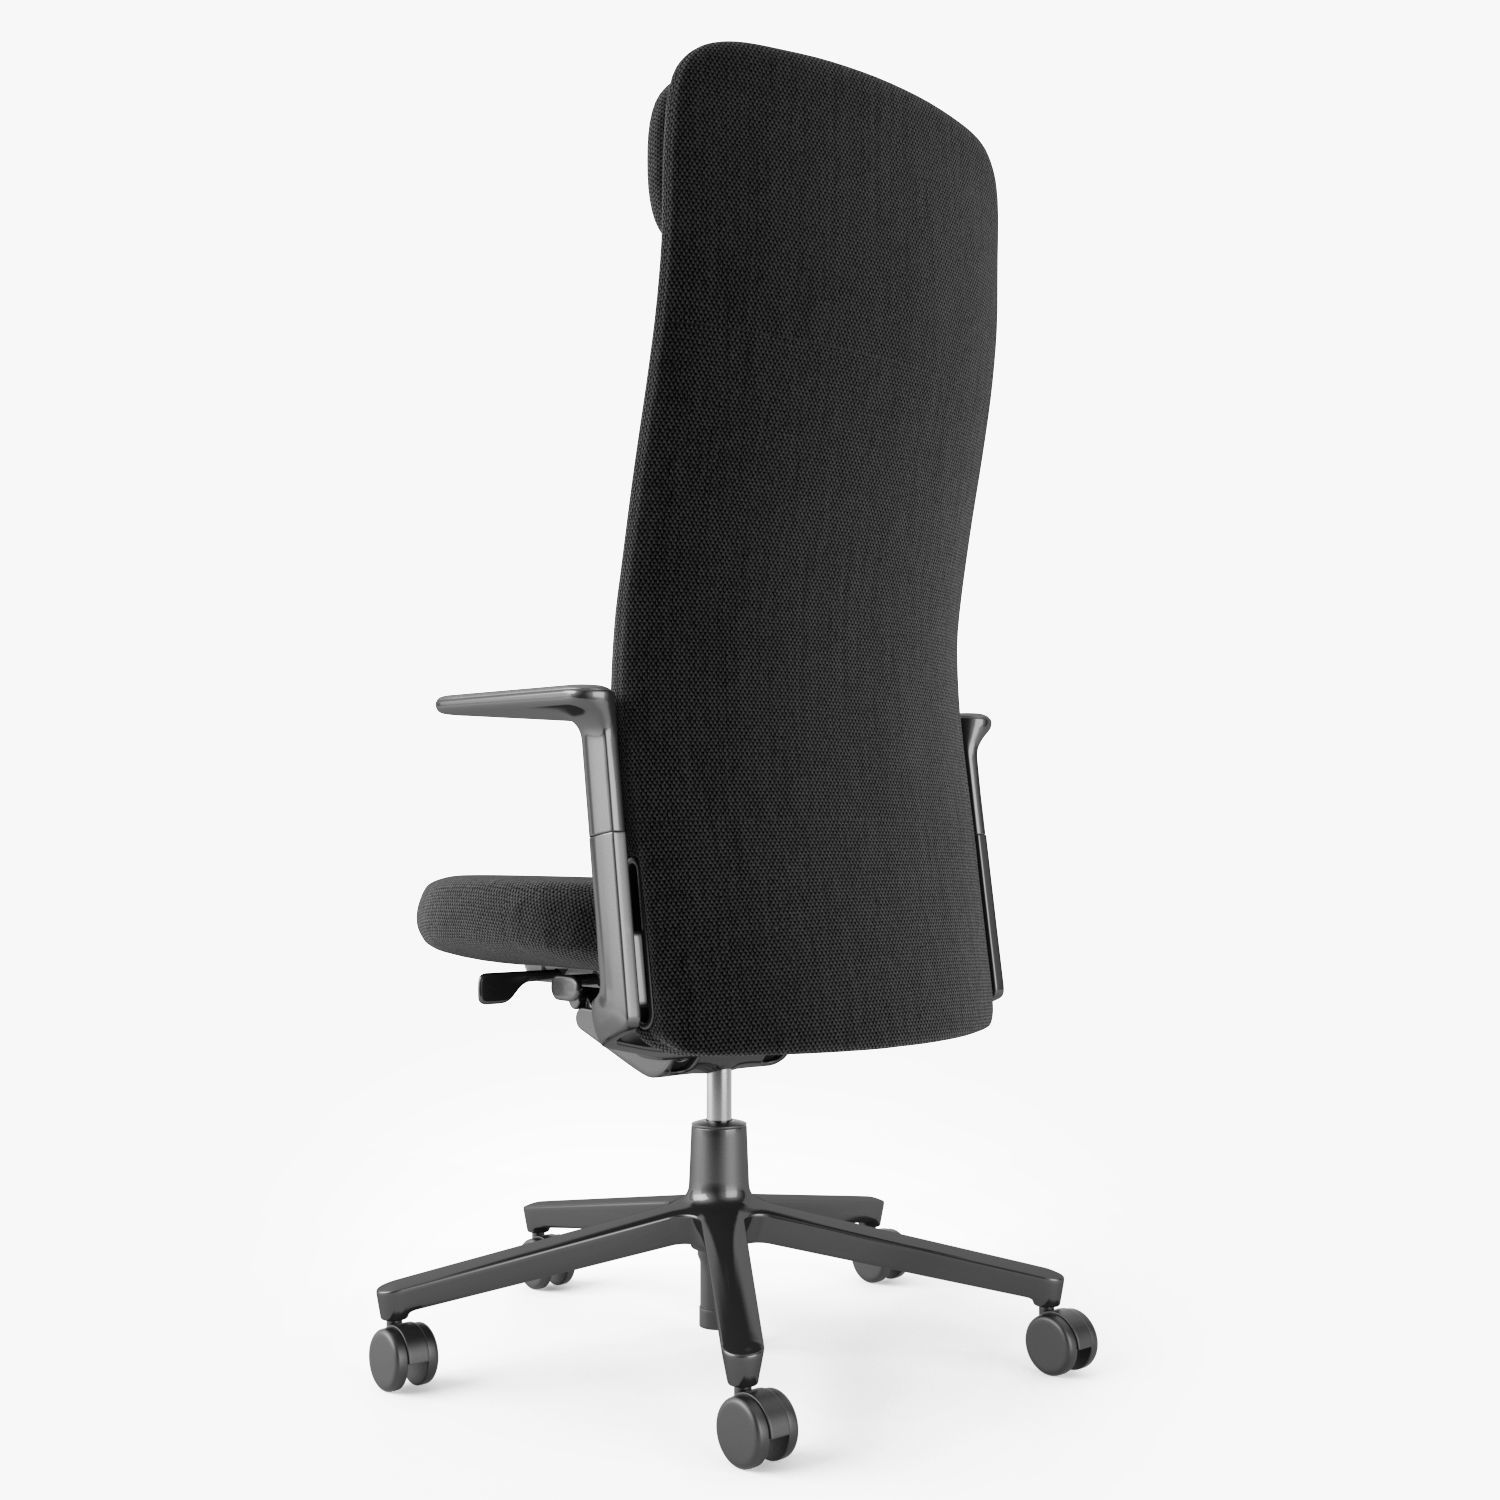 vitra ergonomic chair handicap shower chairs swivel pacific office 3d model cgtrader